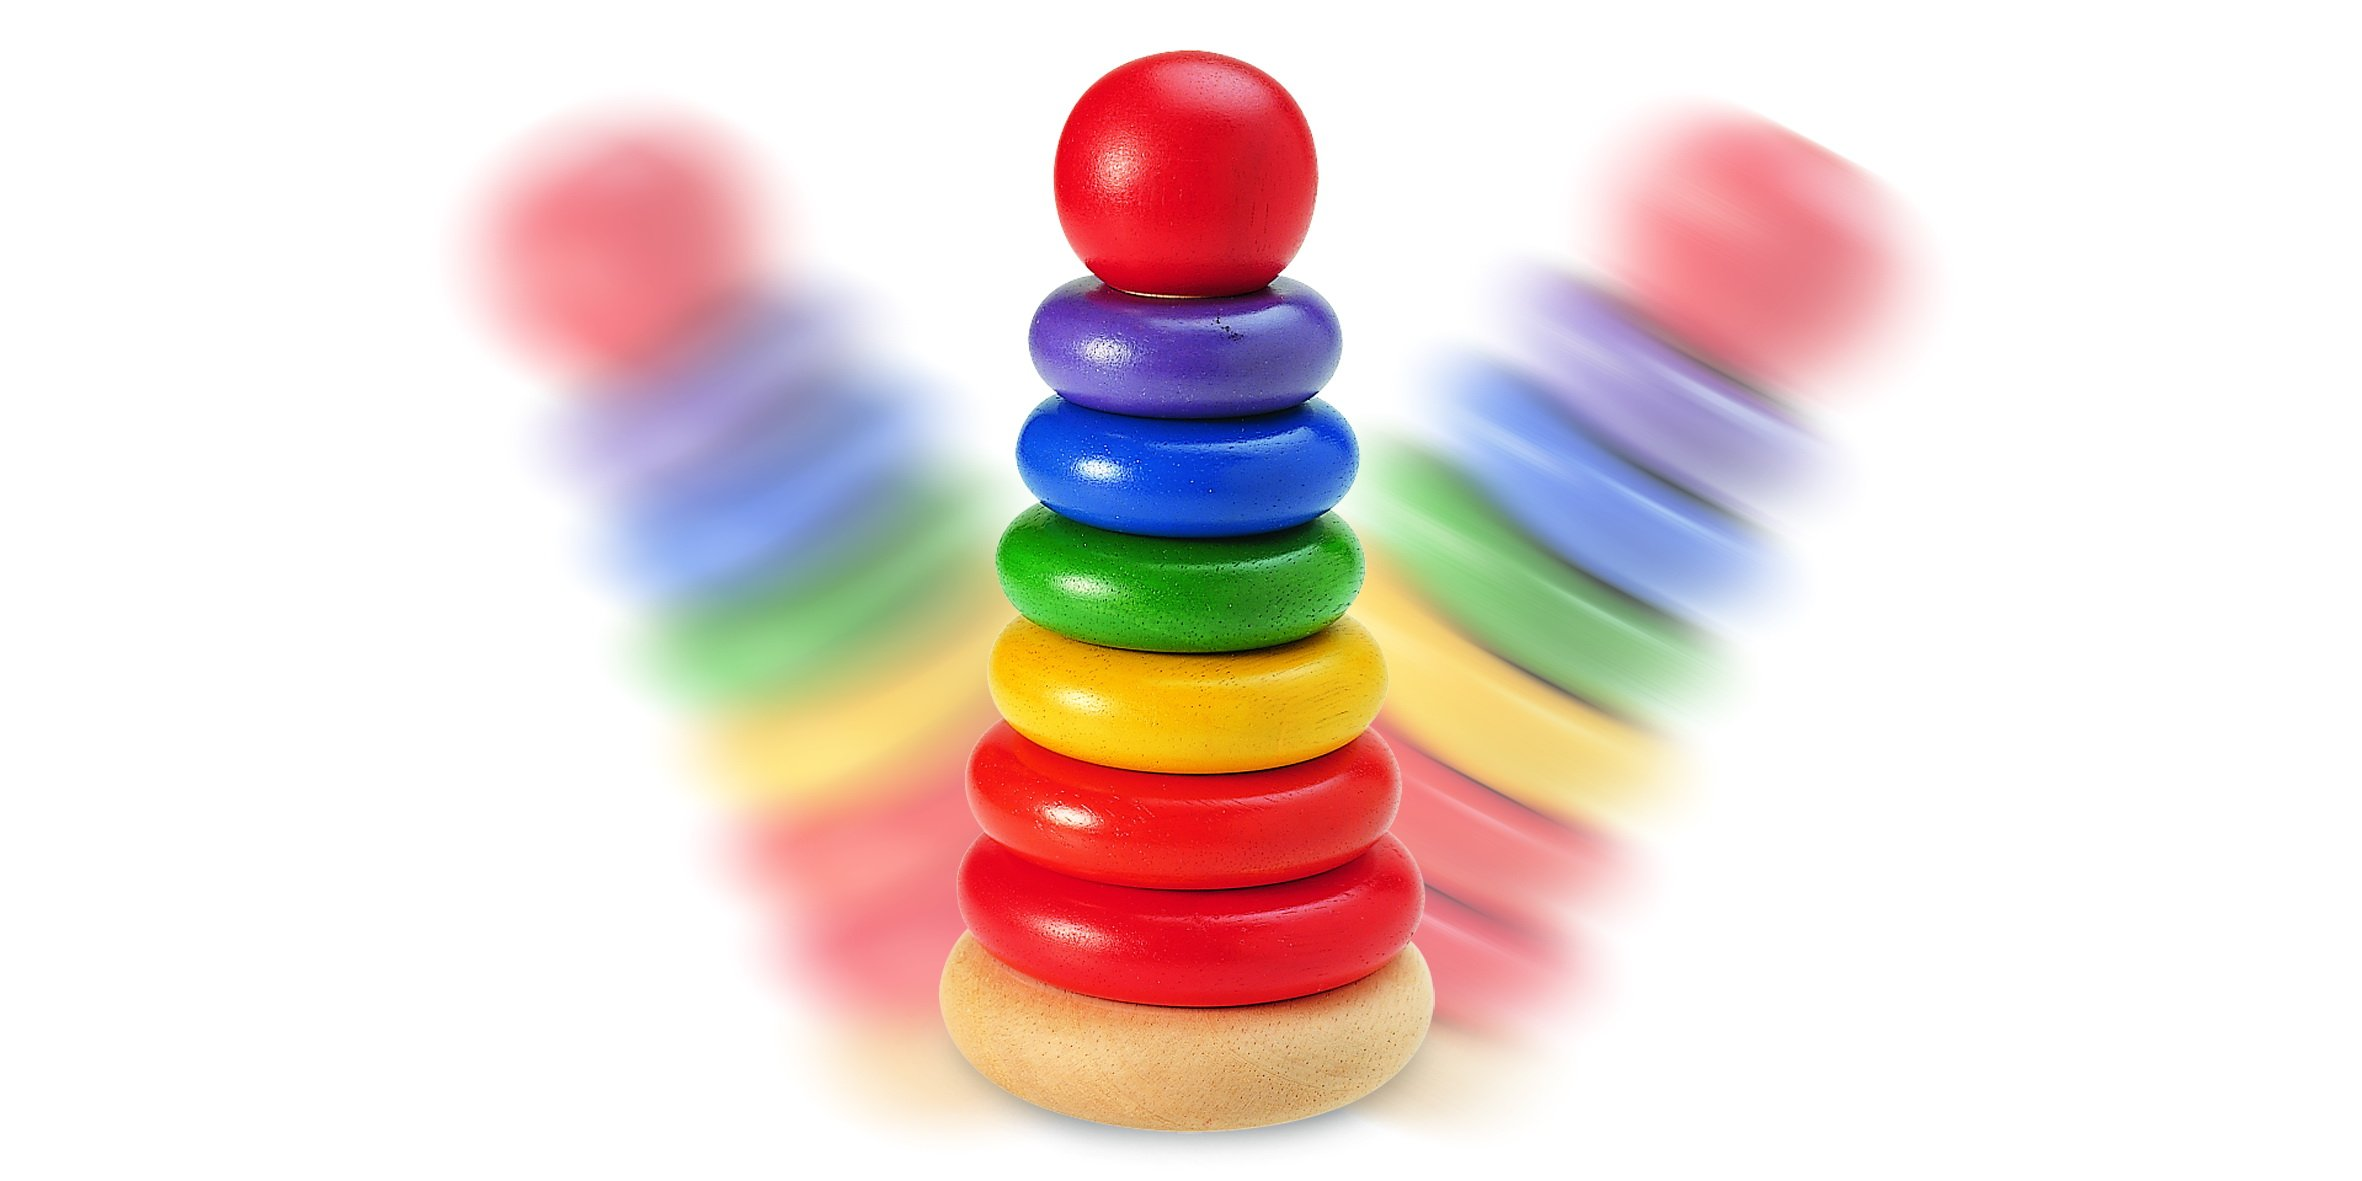 Wonderworld New Stacking Rings Baby Toy - Multi- Colored 7 Rings Non - Toxic by Wonderworld (Image #2)